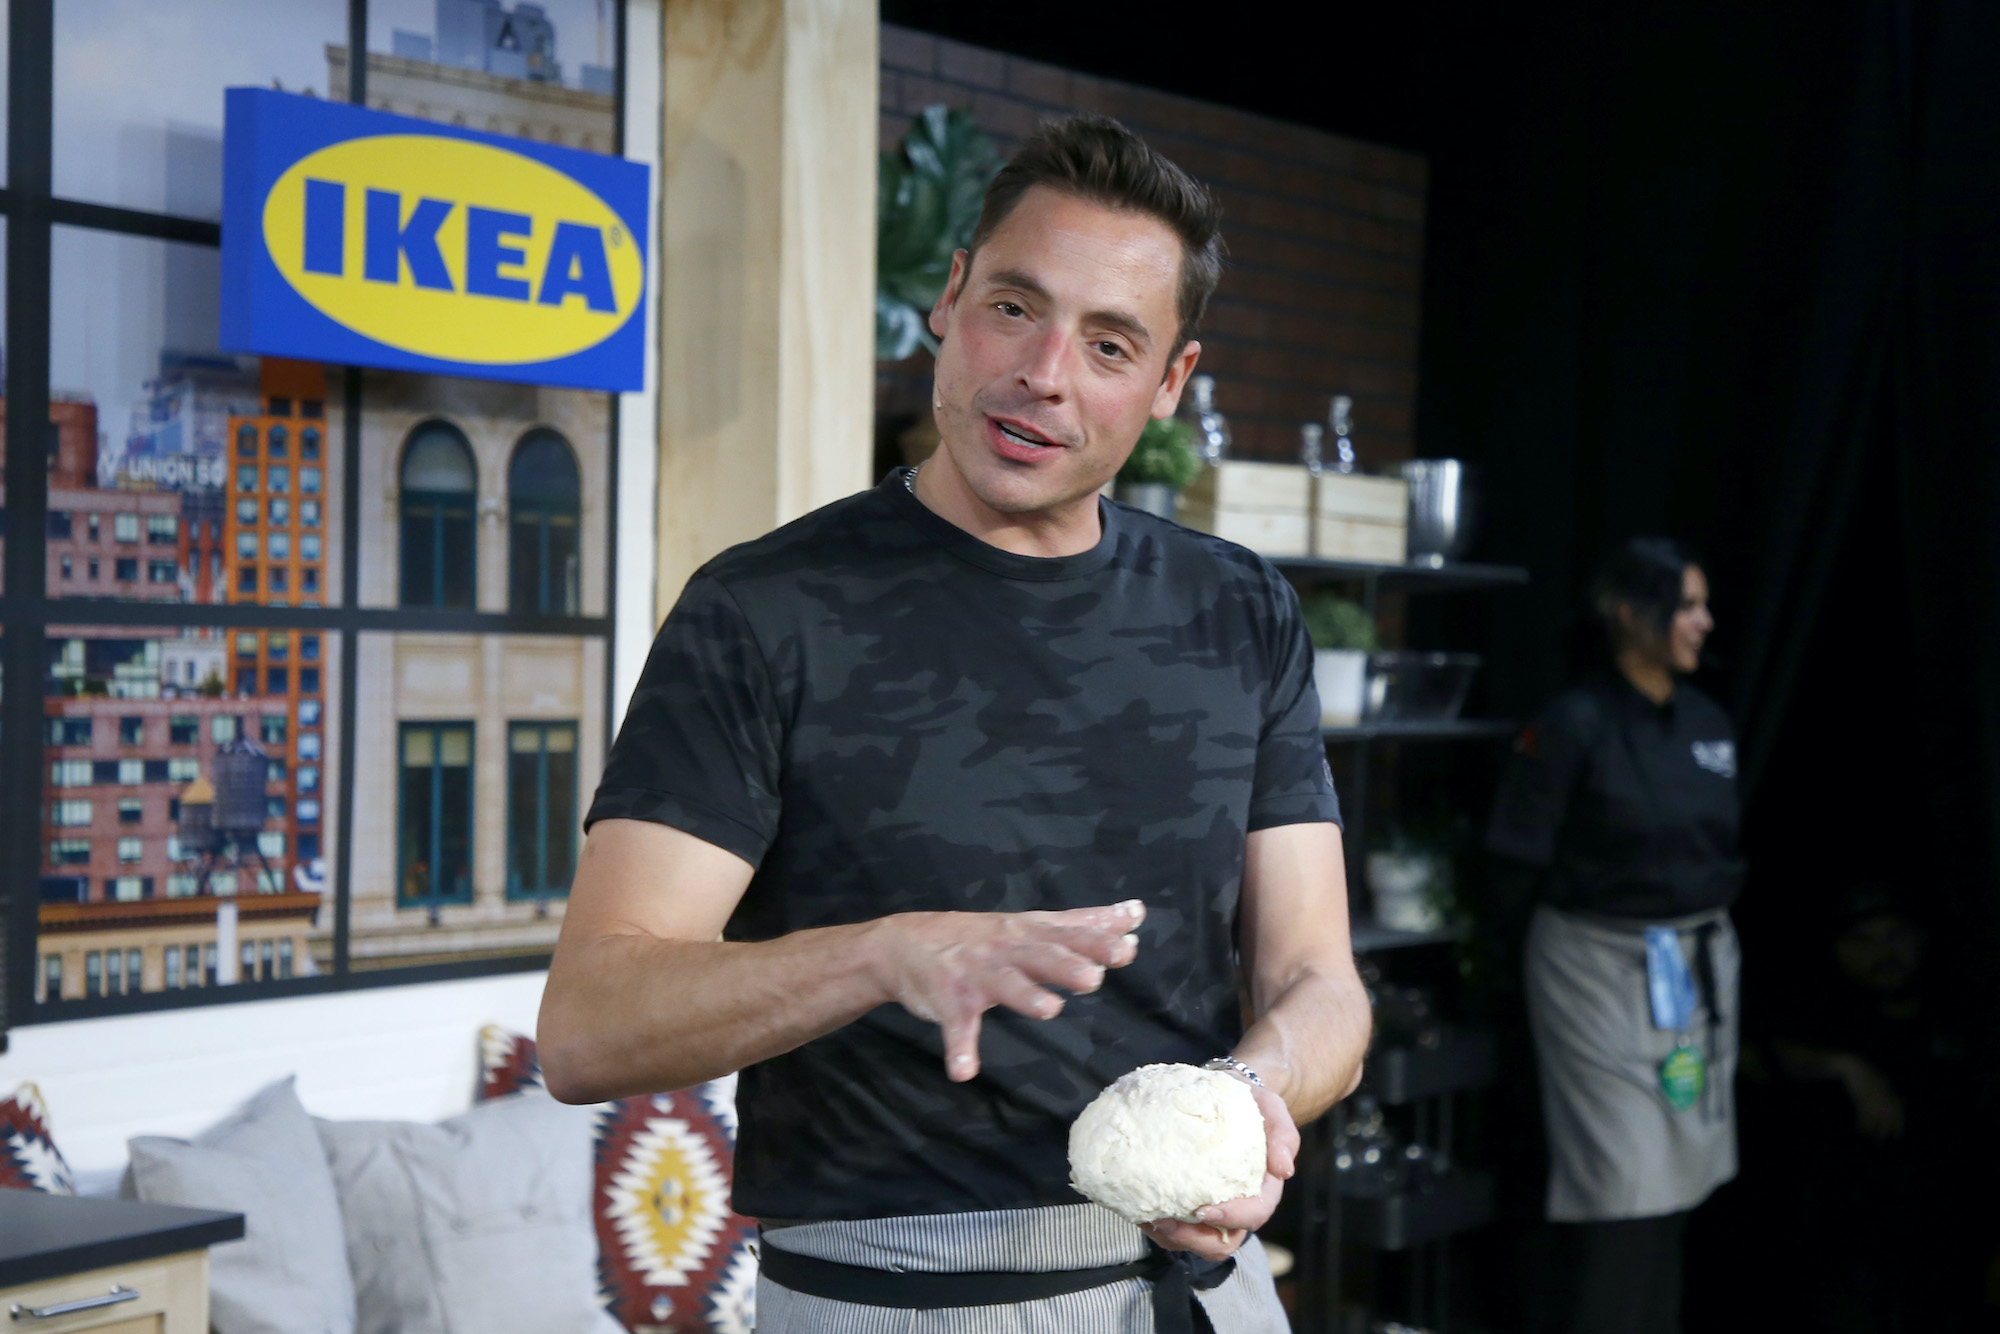 Kitchen Crash Jeff Mauro Debunks Myths About The Show Says It S Not Scripted Or Fake